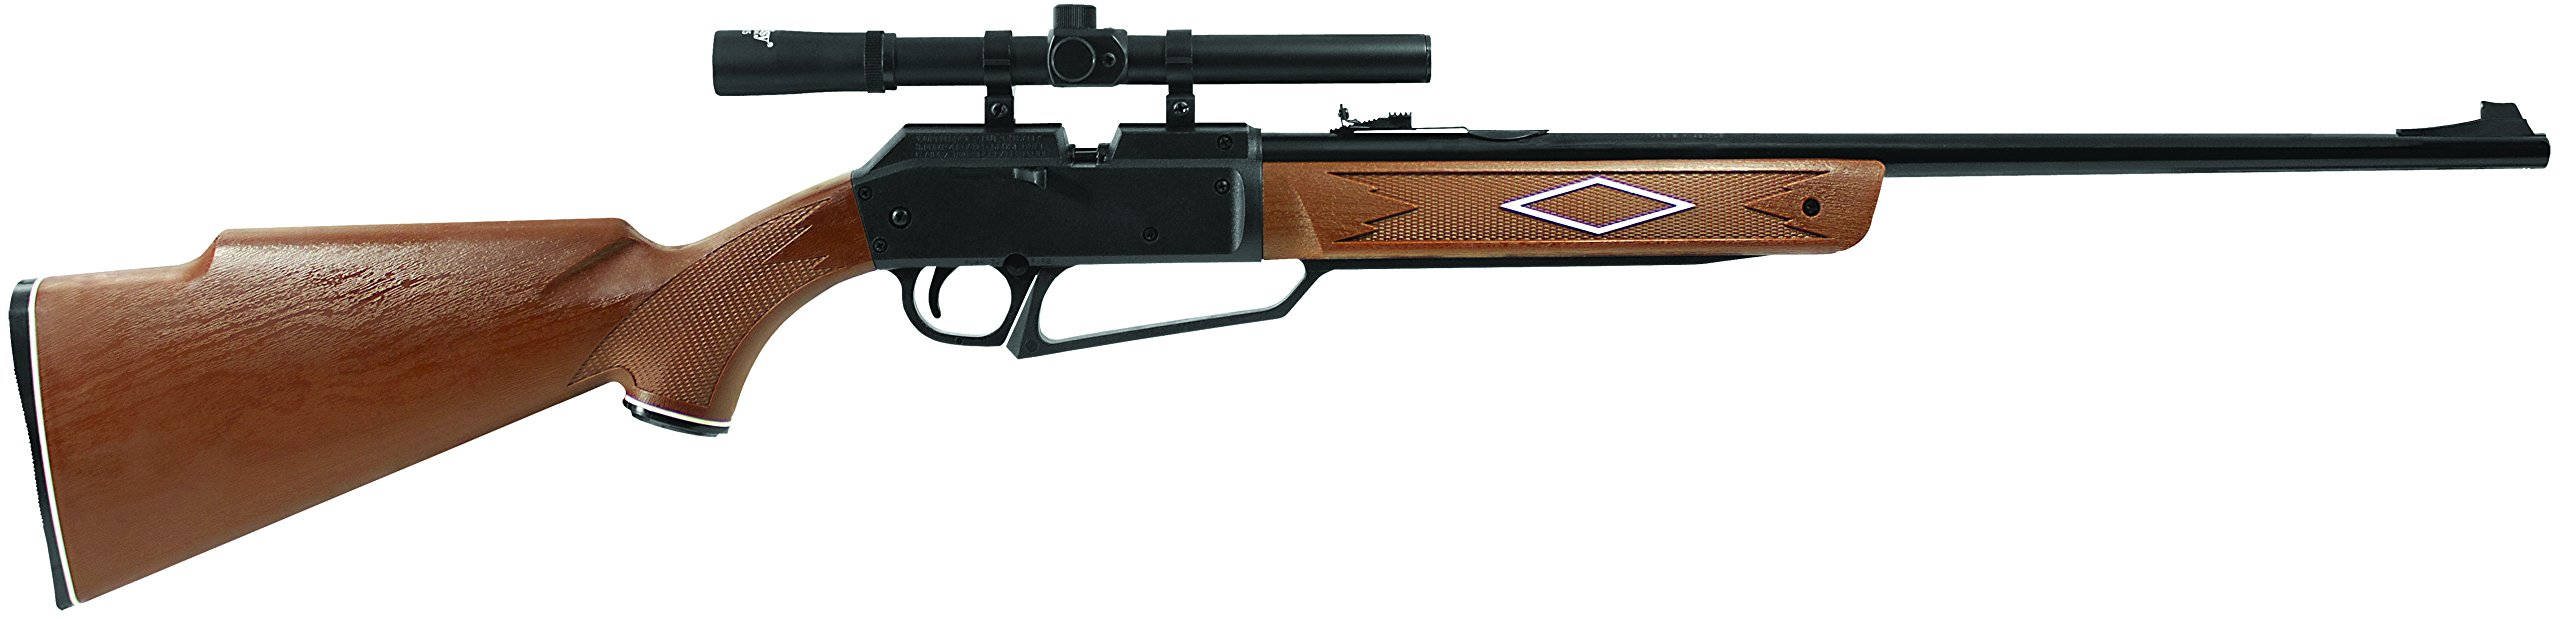 Daisy Outdoor Products 992880-603 880 Rifle with Scope by Daisy